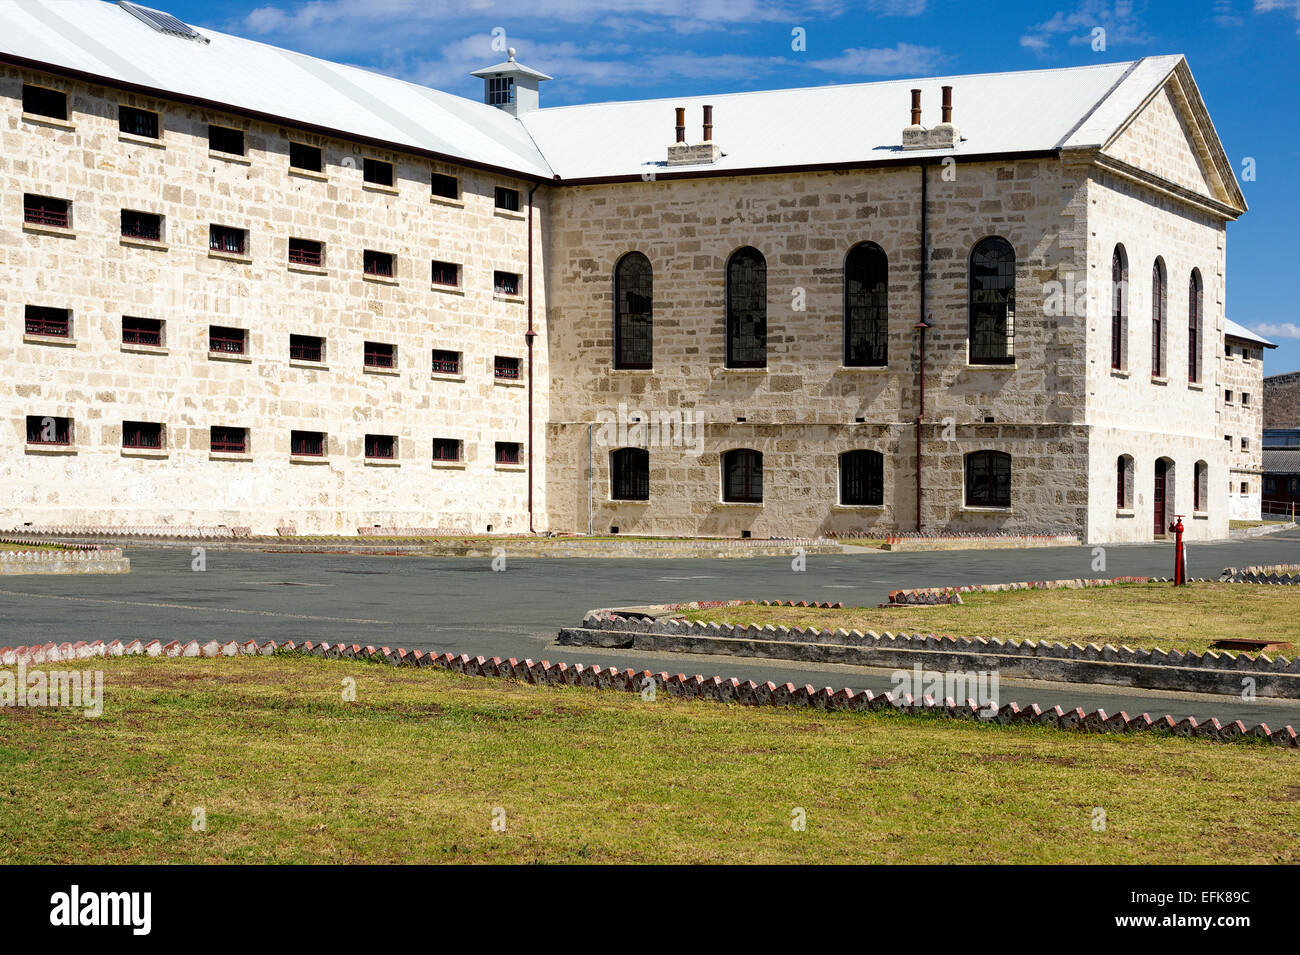 The main block at Fremantle Prison, Fremantle, Perth, Western Australia - Stock Image